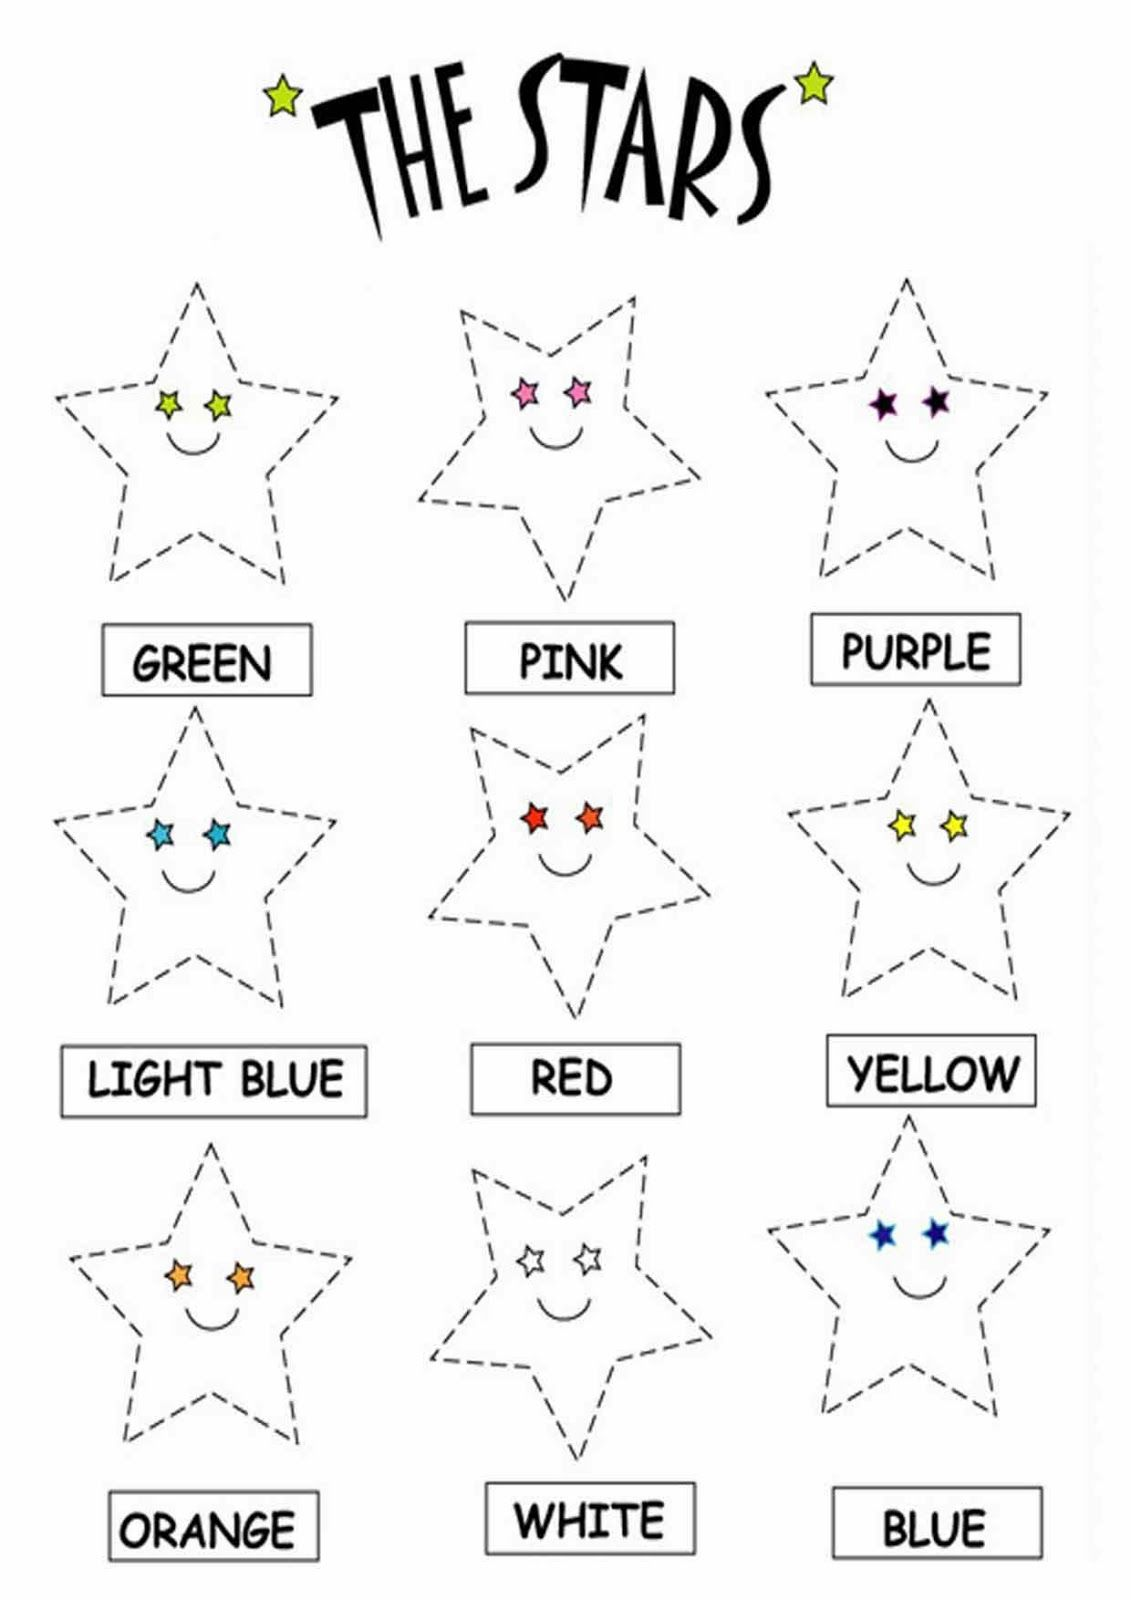 worksheet Color Red Worksheets For Preschool color the stars worksheets download free printable and interactive online worksheets